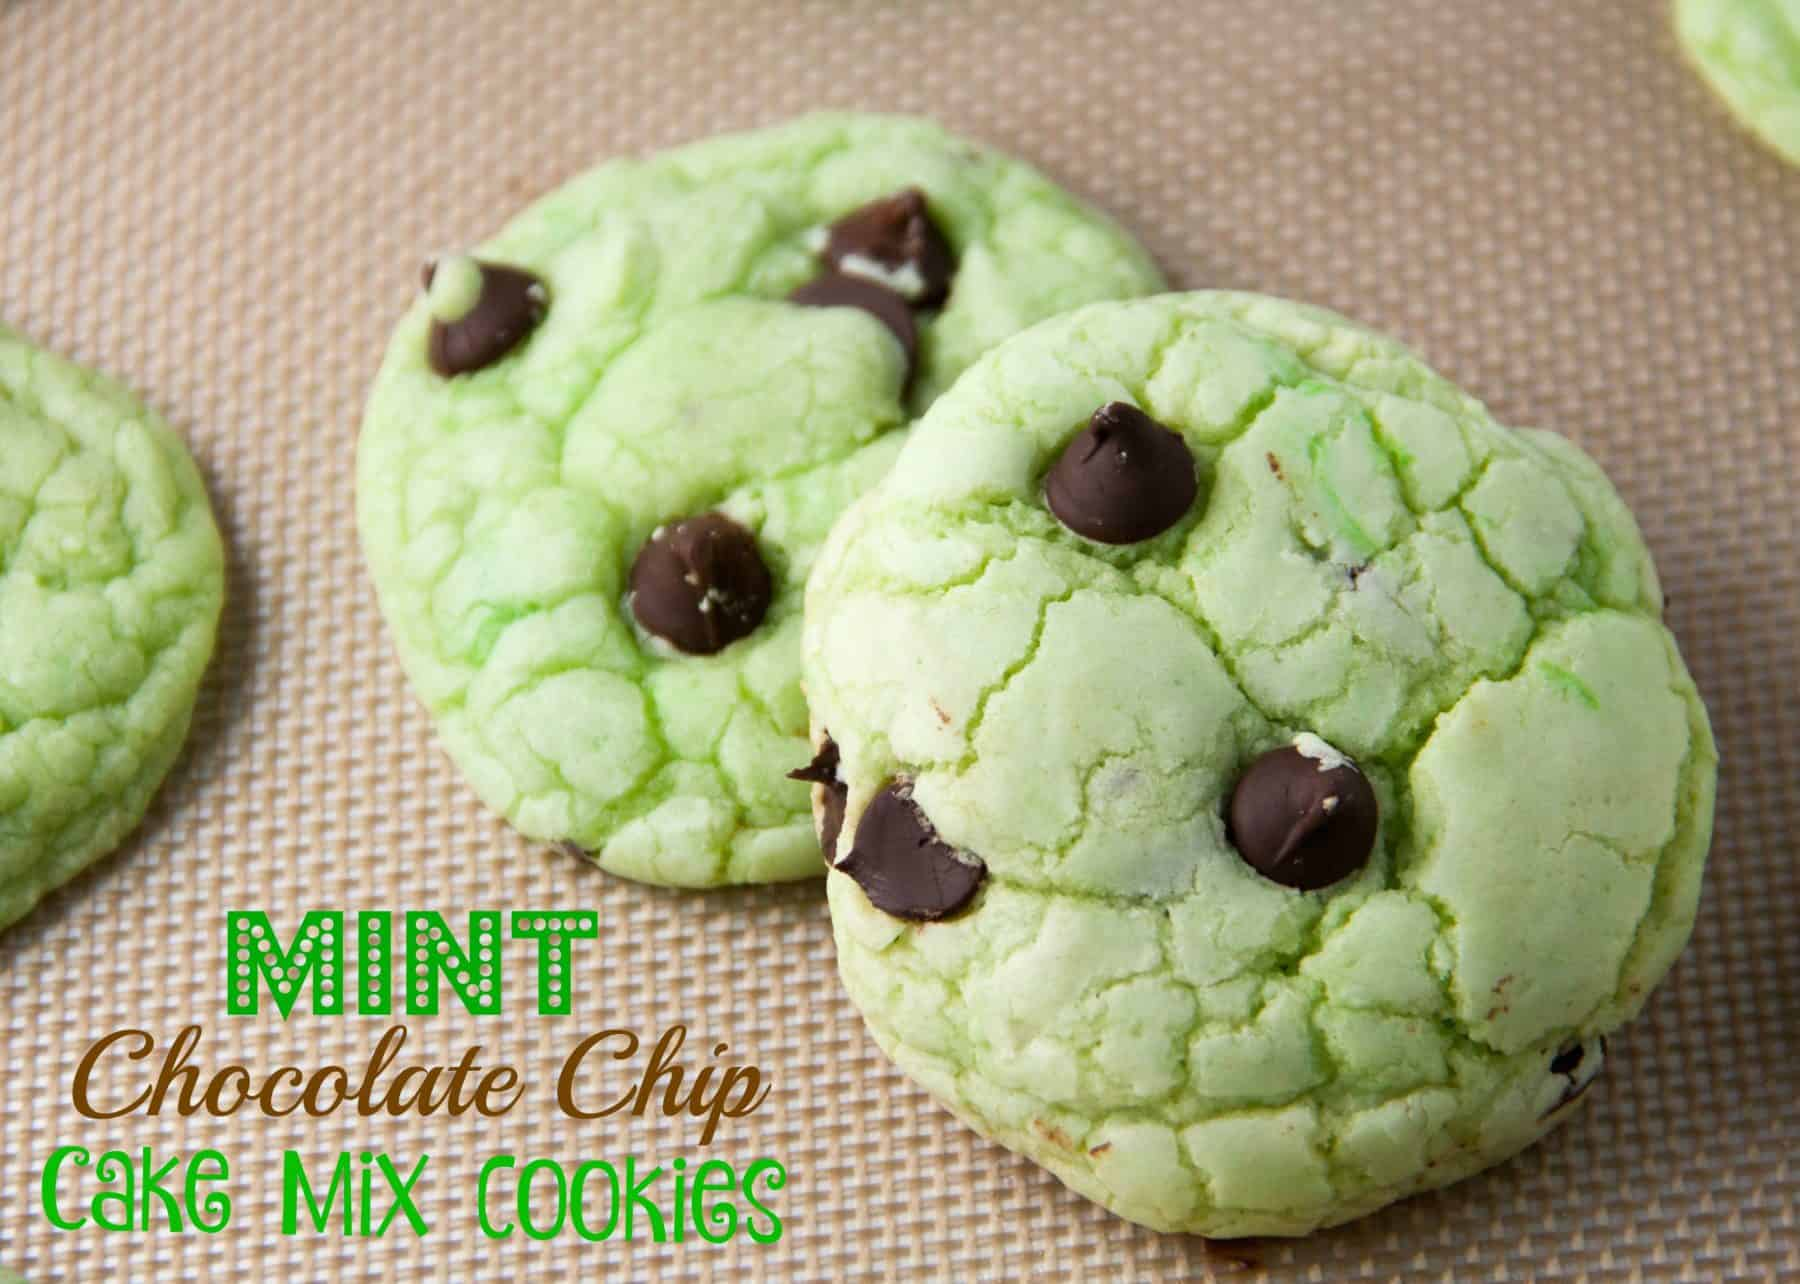 Cookies From White Cake Mix Recipe